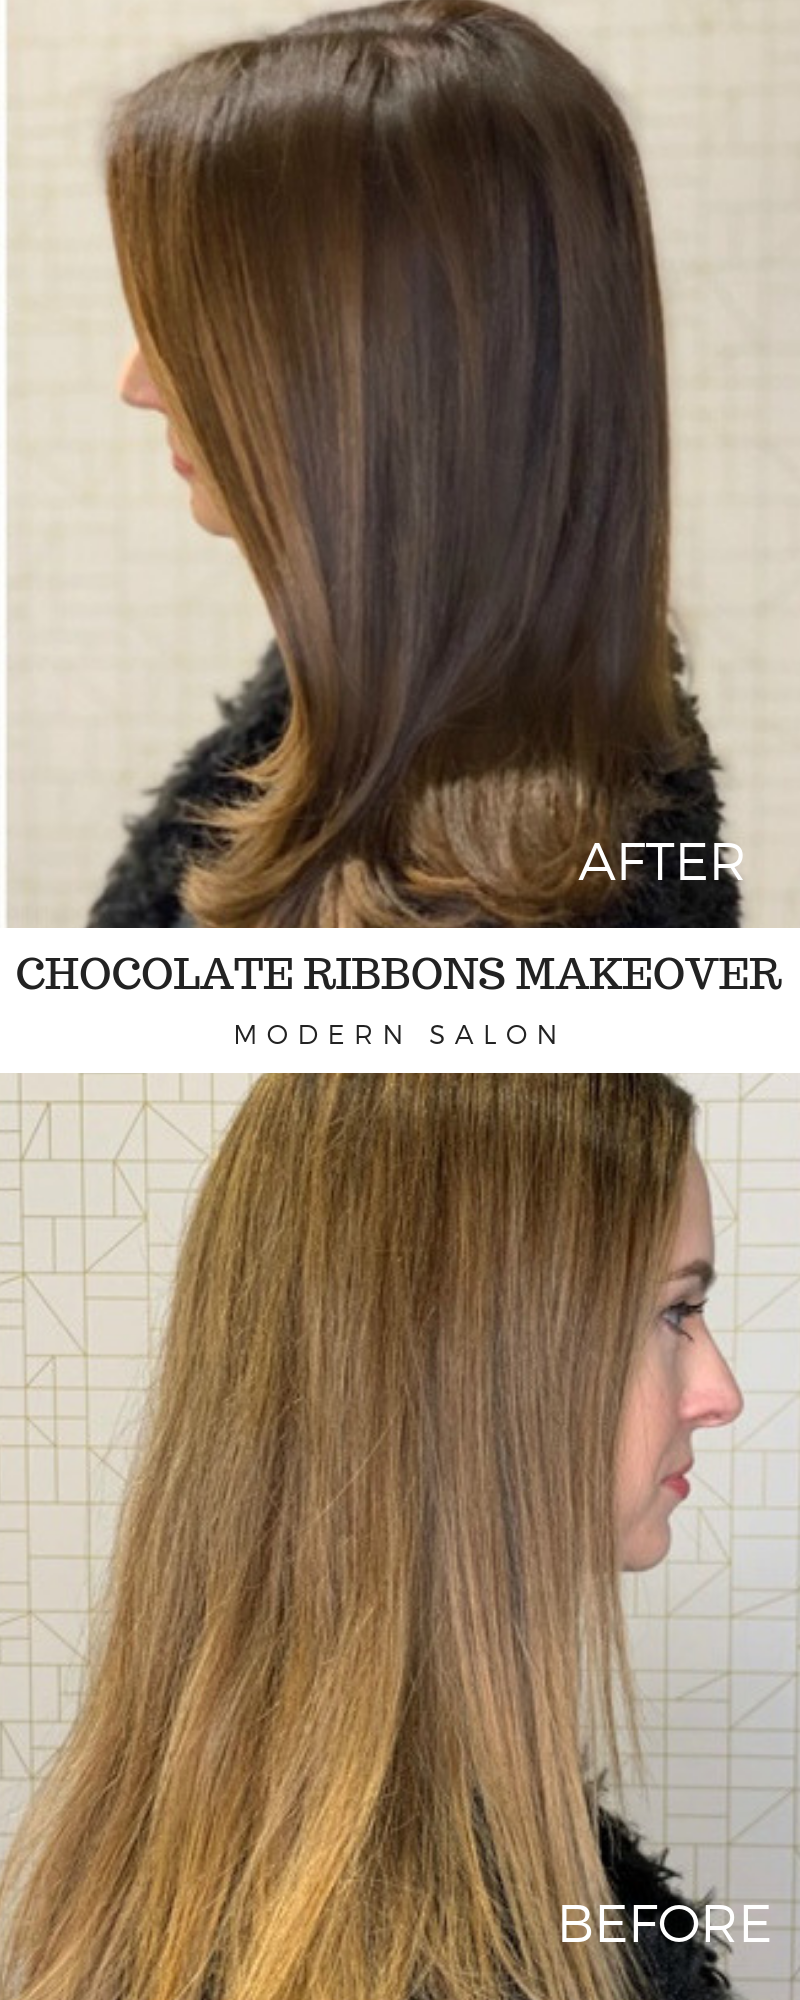 Color How To Faded Blonde Highlights To Rich Chocolate Brunette Ribbons Blonde Highlights Chocolate Brunette Hair Color